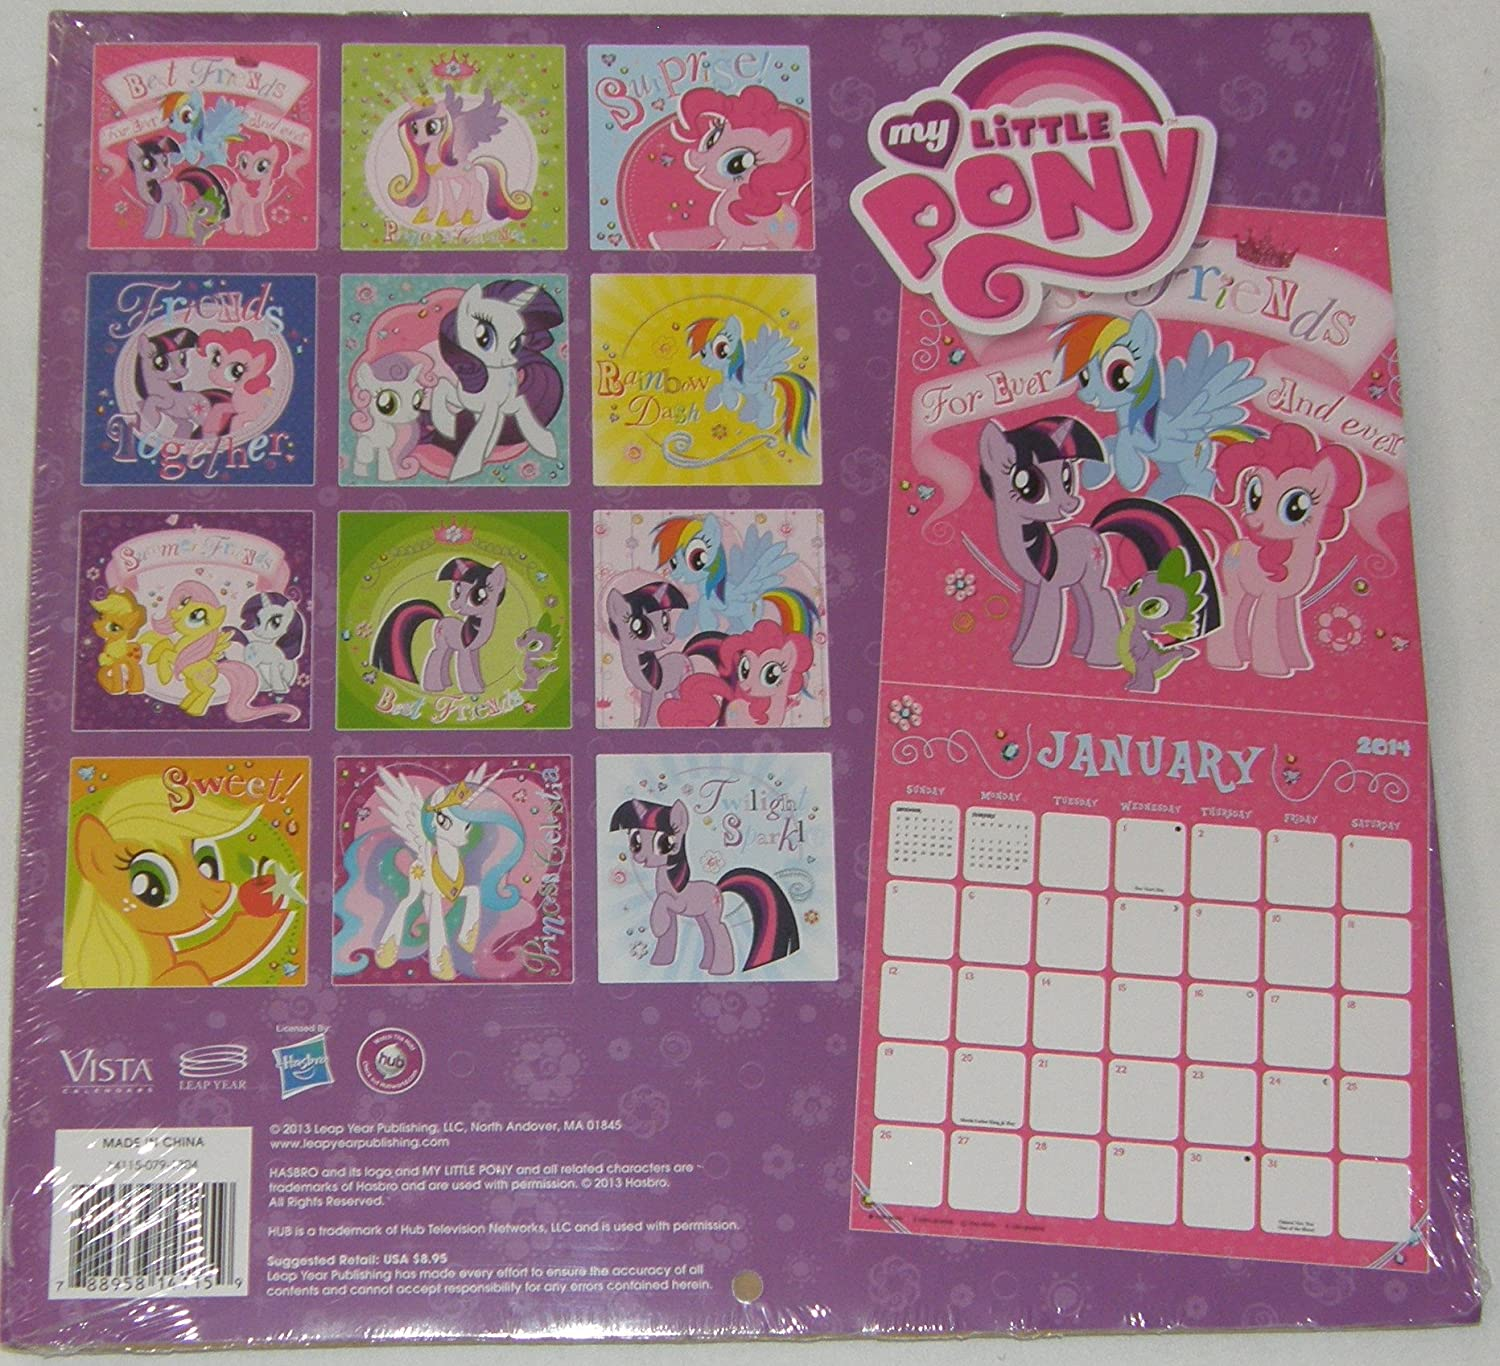 My Little Pony - 2014 Calendar